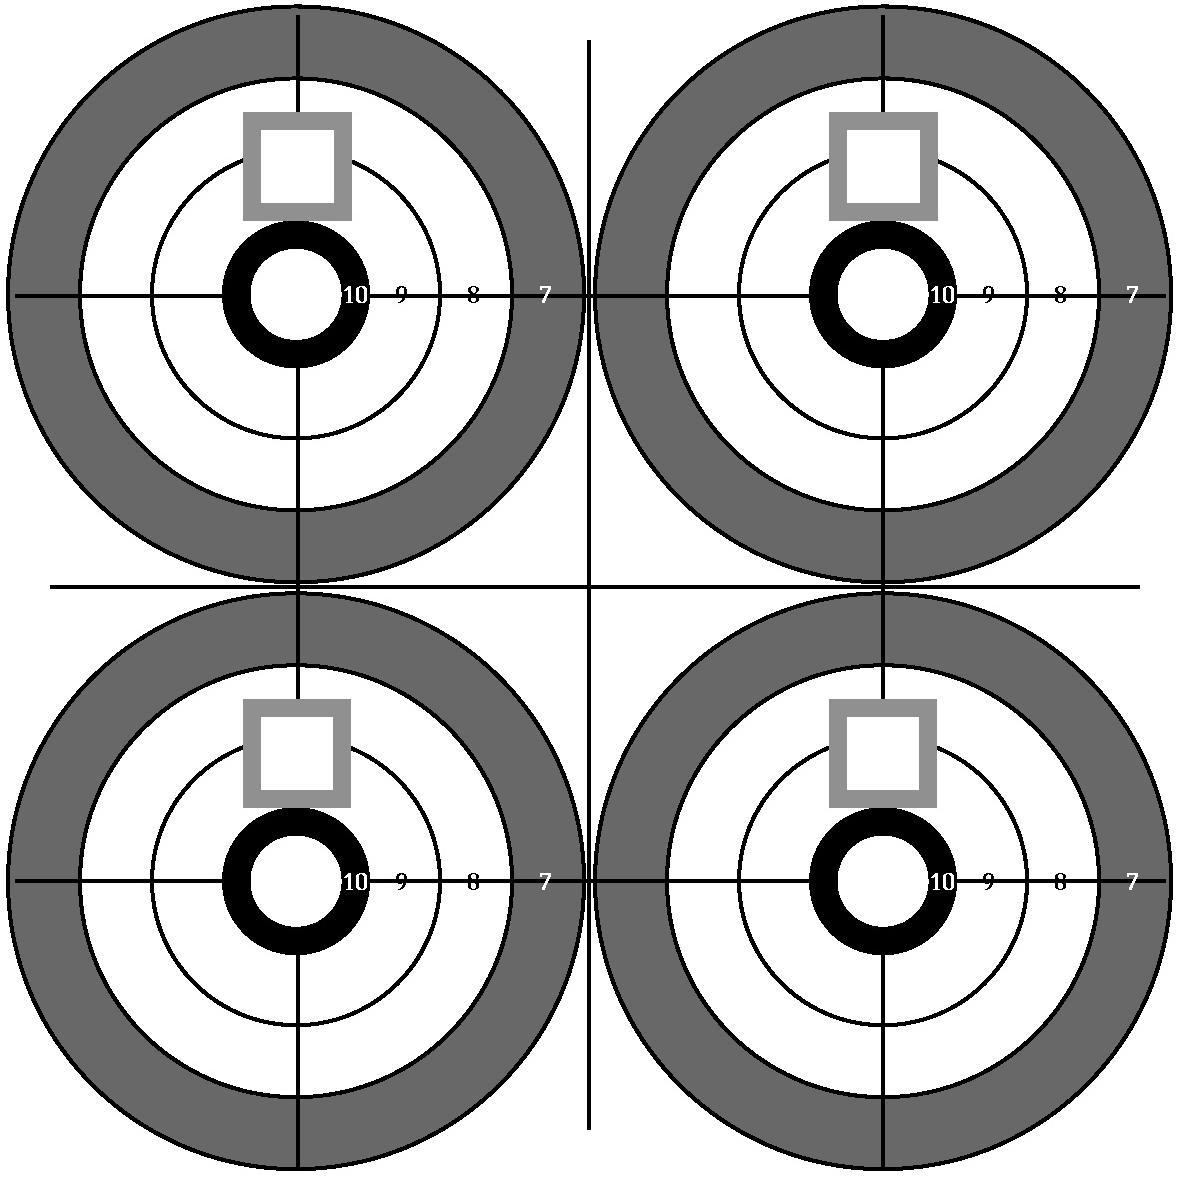 This is a graphic of Astounding Printable Bb Targets